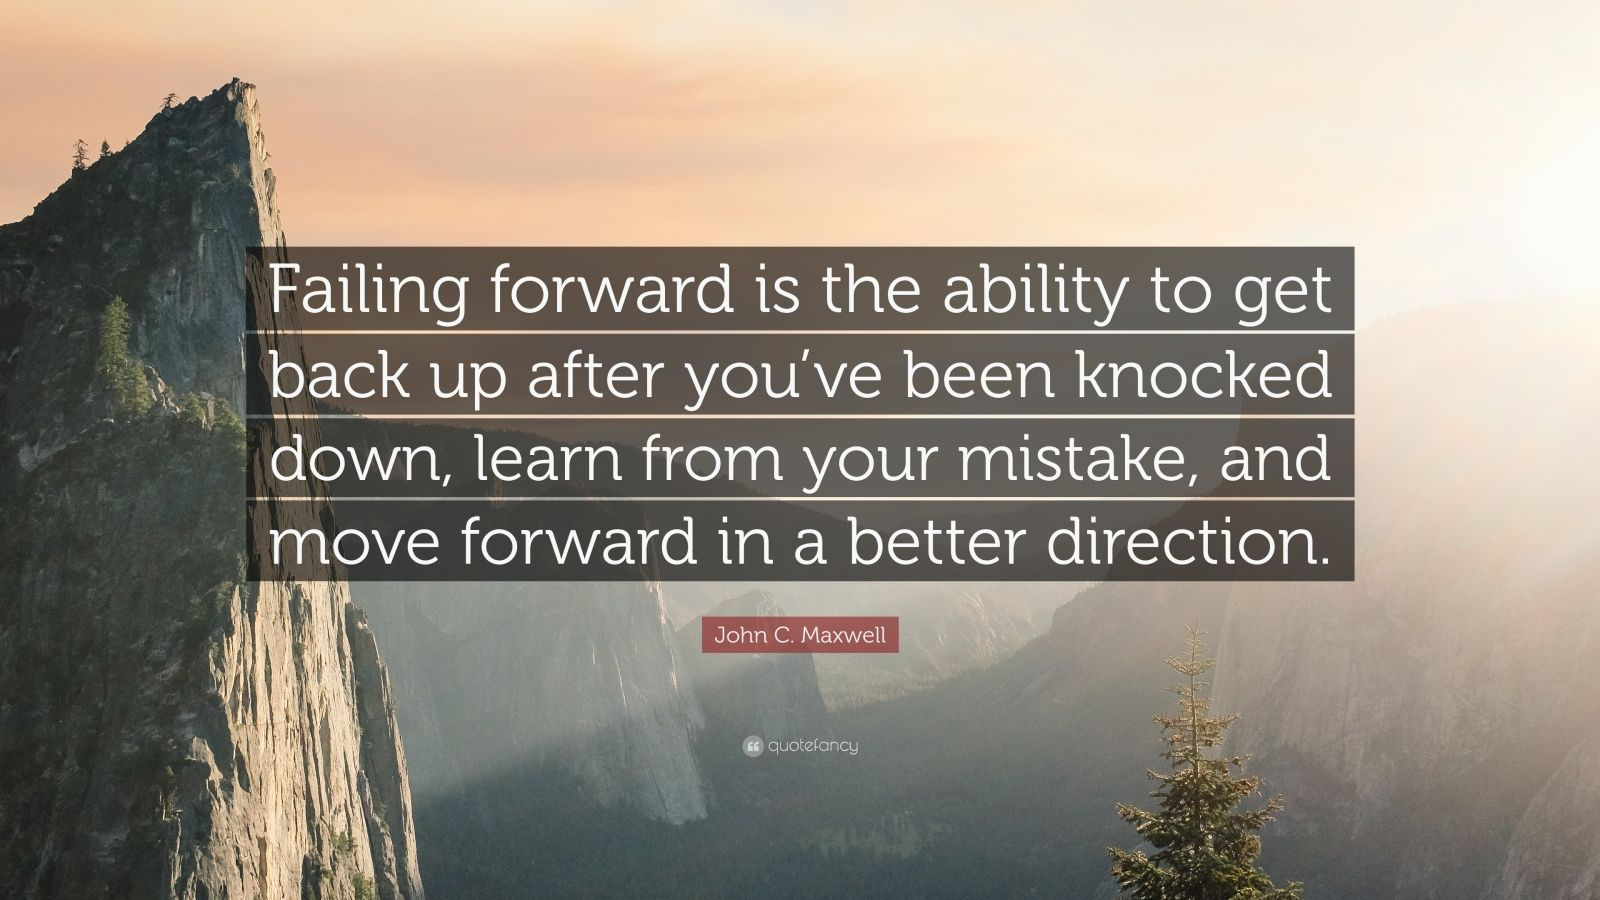 """John C. Maxwell Quote: """"Failing forward is the ability to get back up after you've been knocked down, learn from your mistake, and move forward in a better direction."""""""